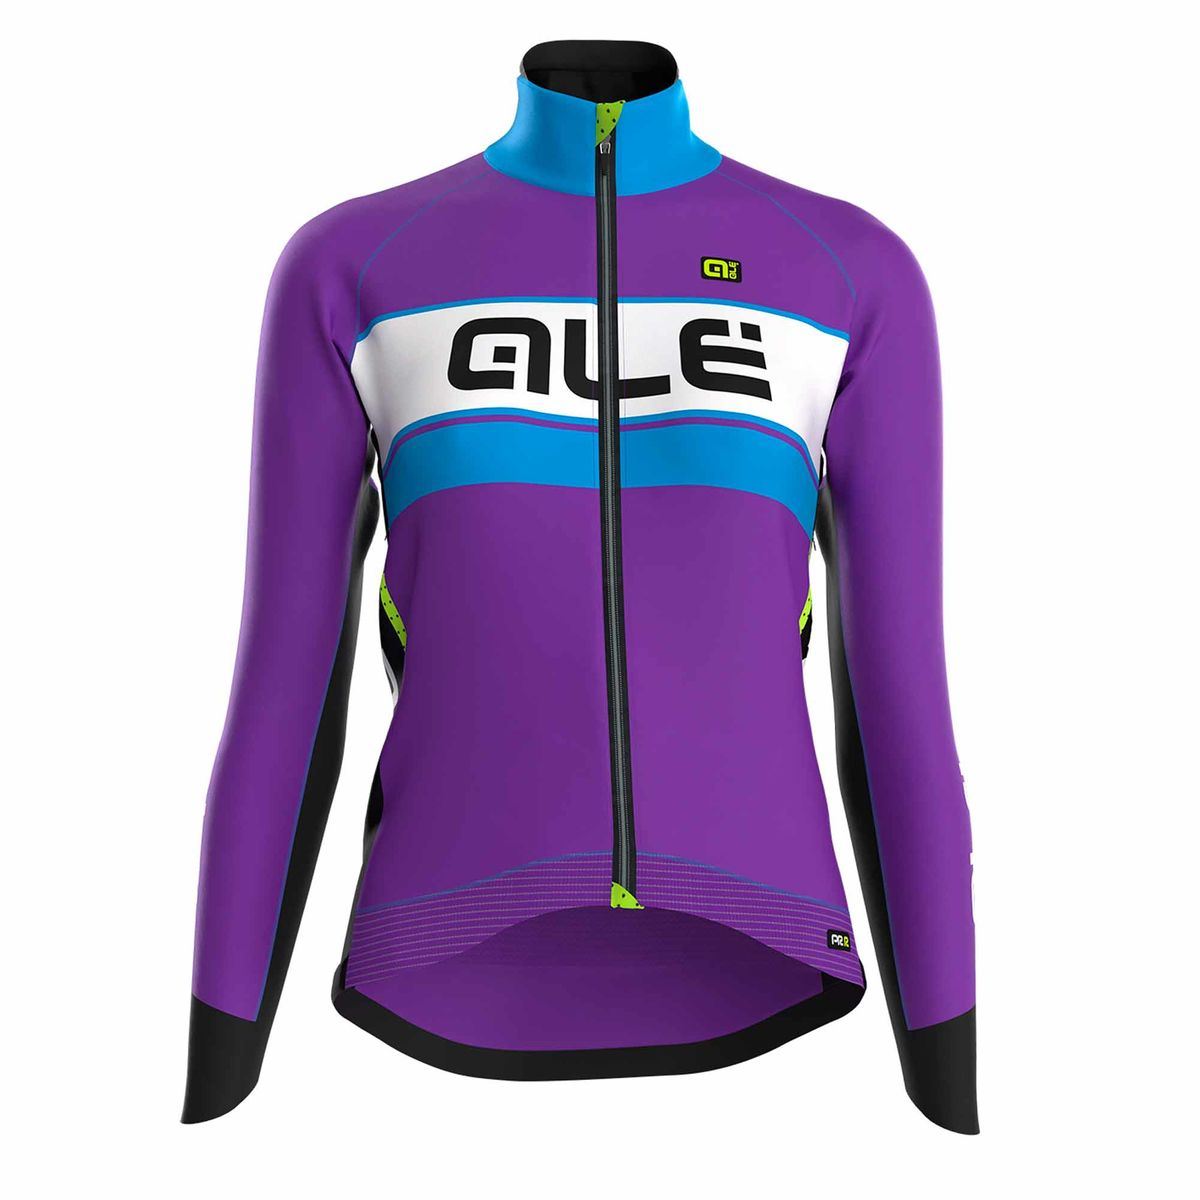 GRAPHICS PRR BERING 2016 women's softshell jacket